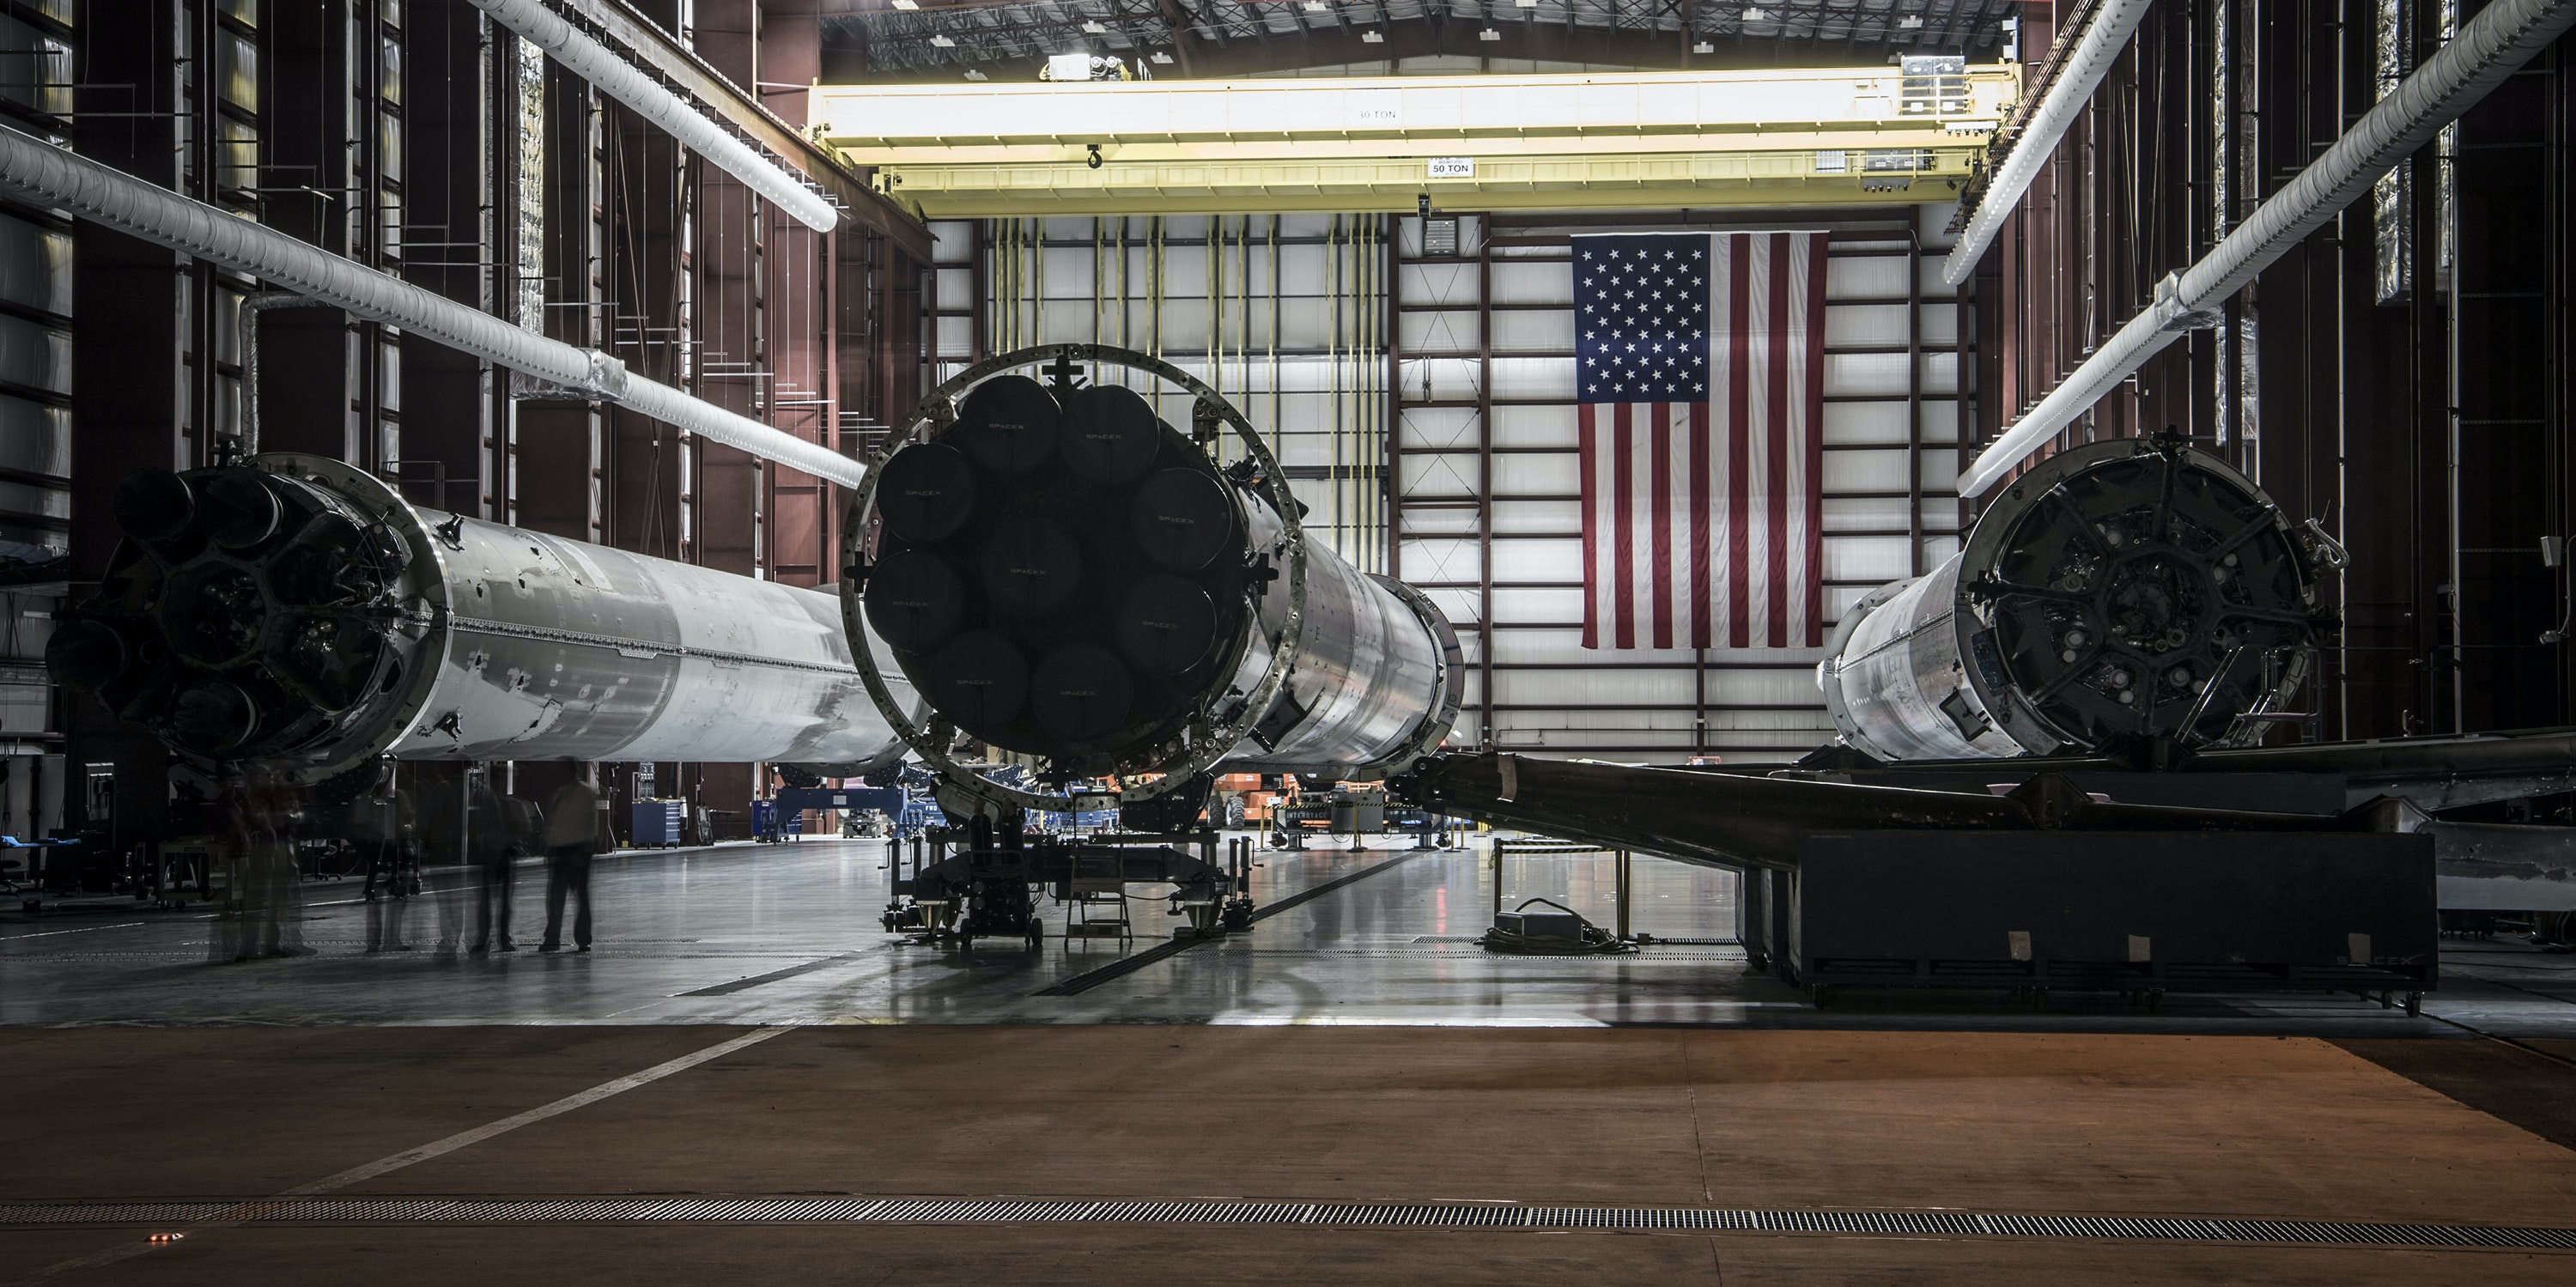 CAPE CANAVERAL, FL - MAY 14: In this handout provided by the National Aeronautics and Space Administration (NASA), landed SpaceX rockets sit in Launch Complex 39 at the Kennedy Space Center on May 14, 2016 in Cape Canaveral, Florida. (Photo by NASA via Getty Images)